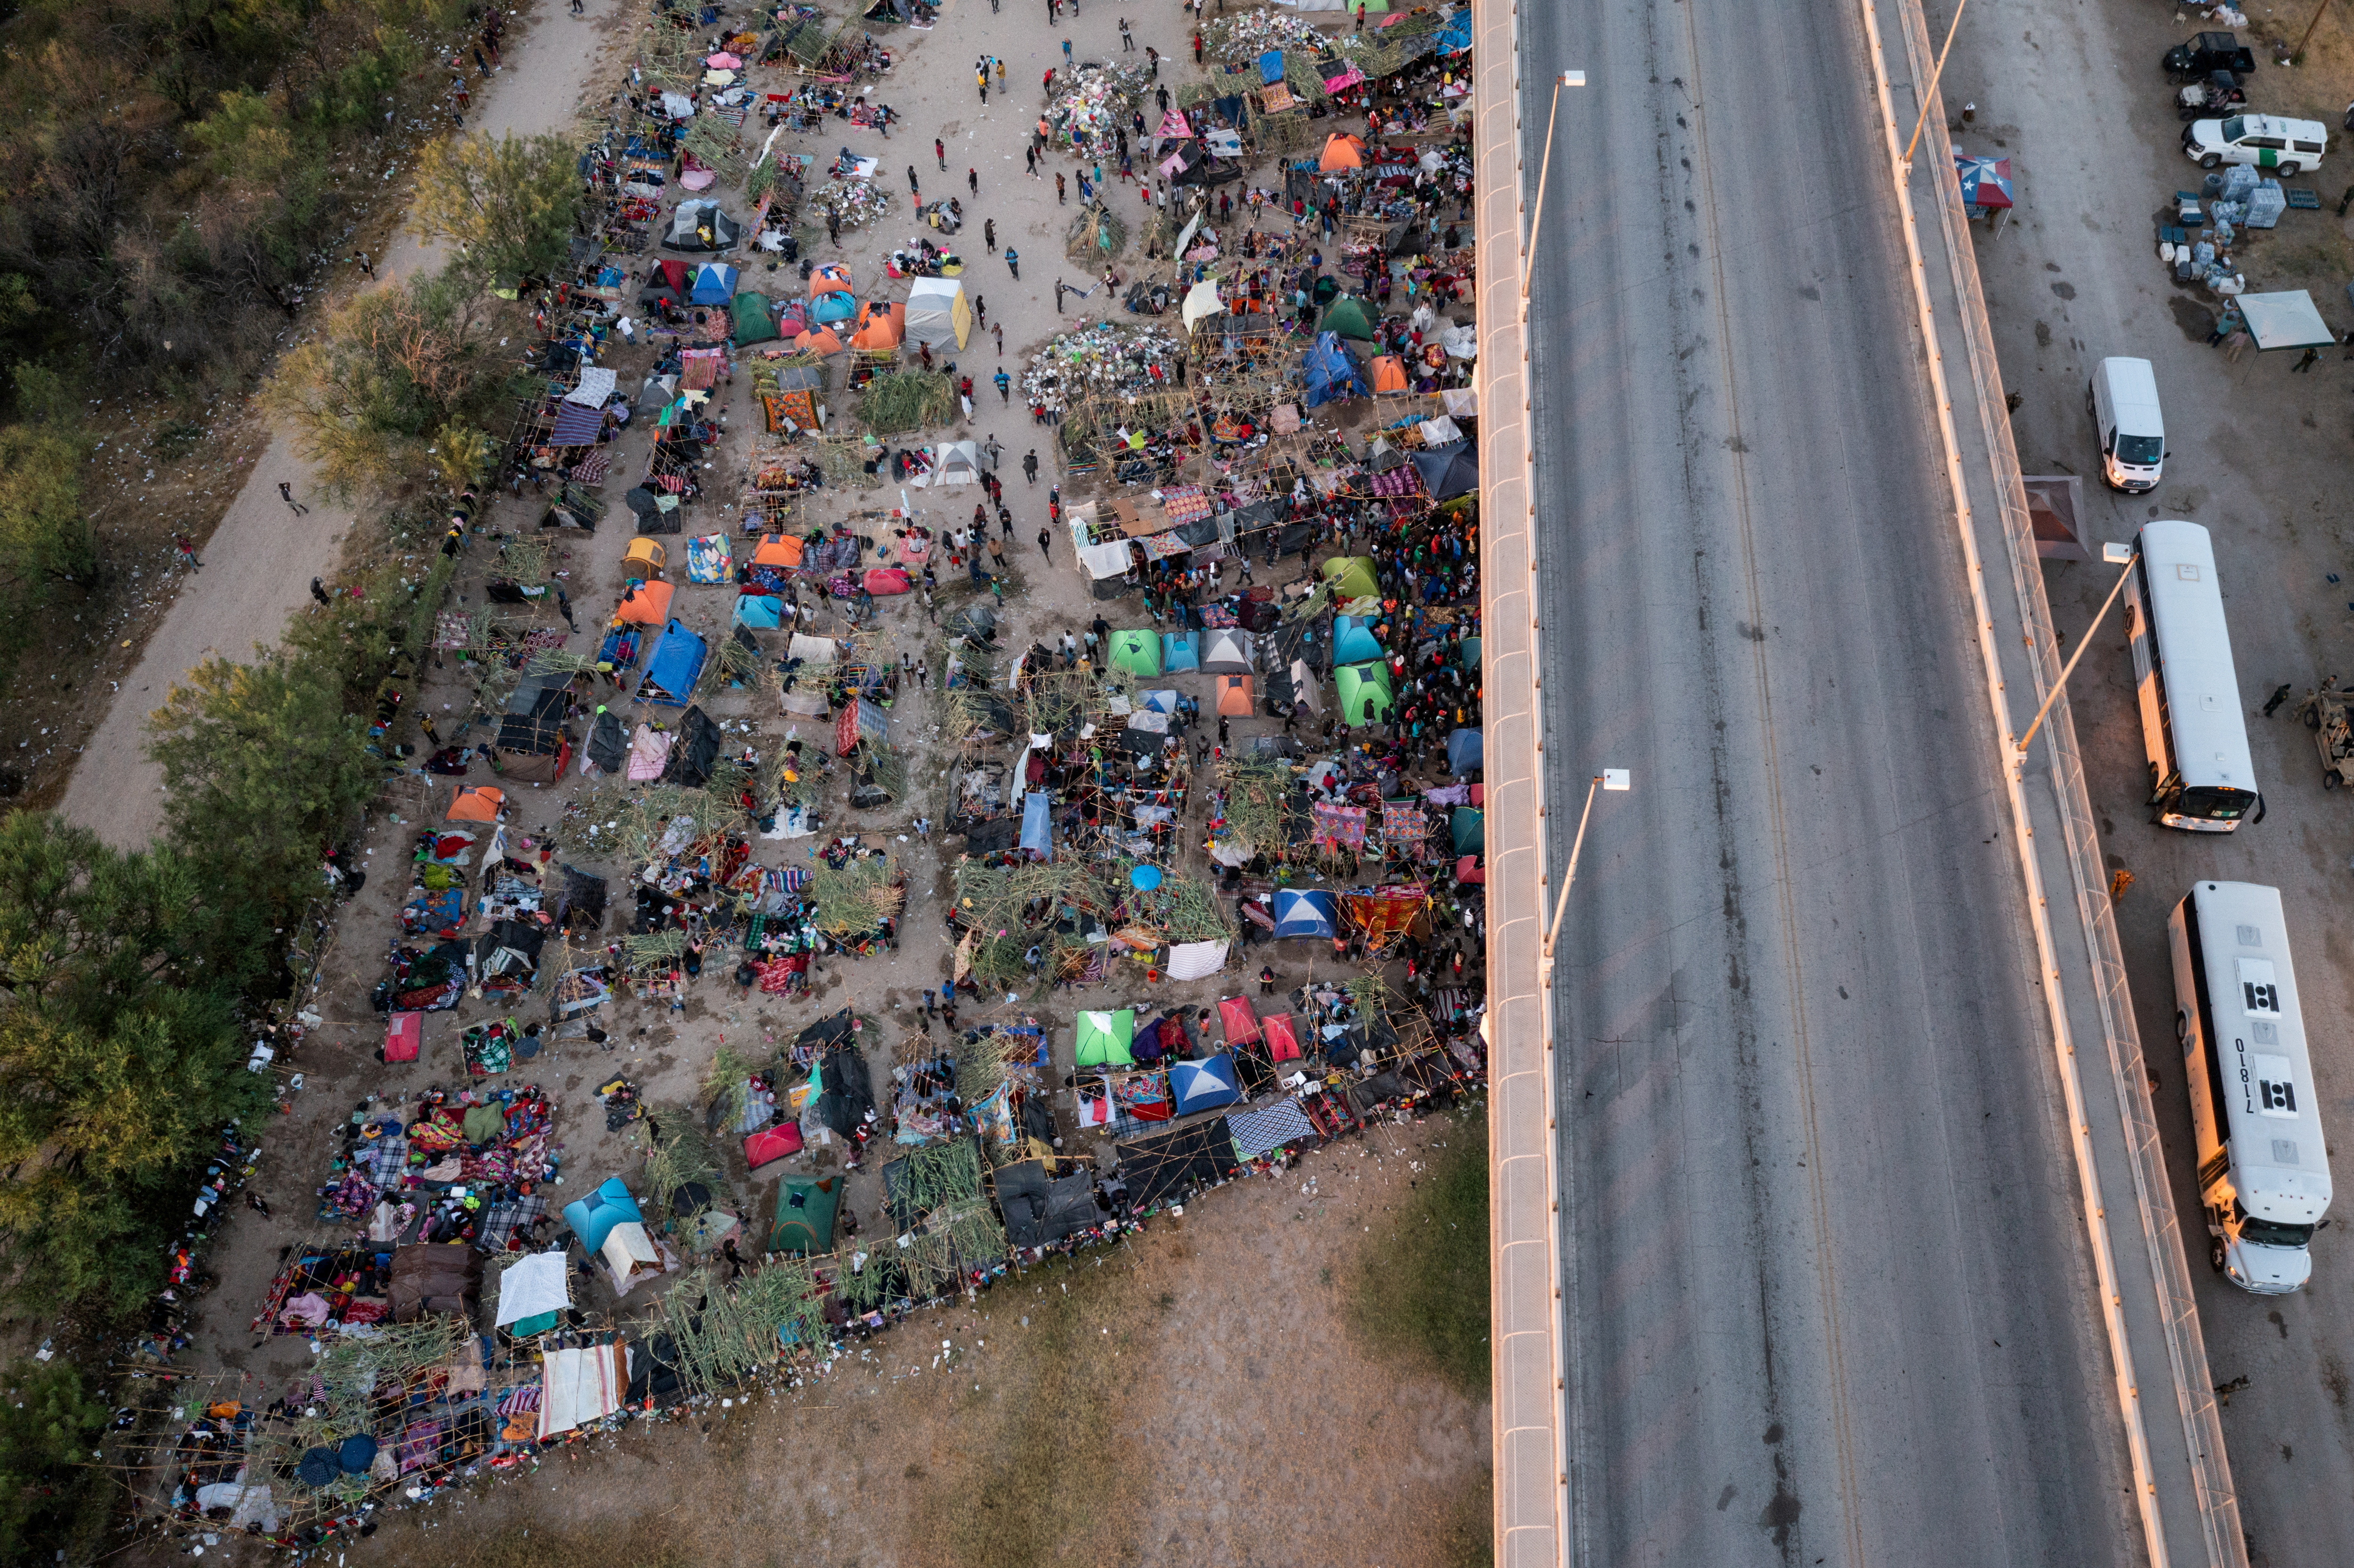 Vehicles await to transport migrants as they shelter along the Del Rio International Bridge after crossing the Rio Grande river into the U.S. from Ciudad Acuna in Del Rio, Texas, U.S. September 19, 2021. Picture taken with a drone. REUTERS/Adrees Latif/File Photo